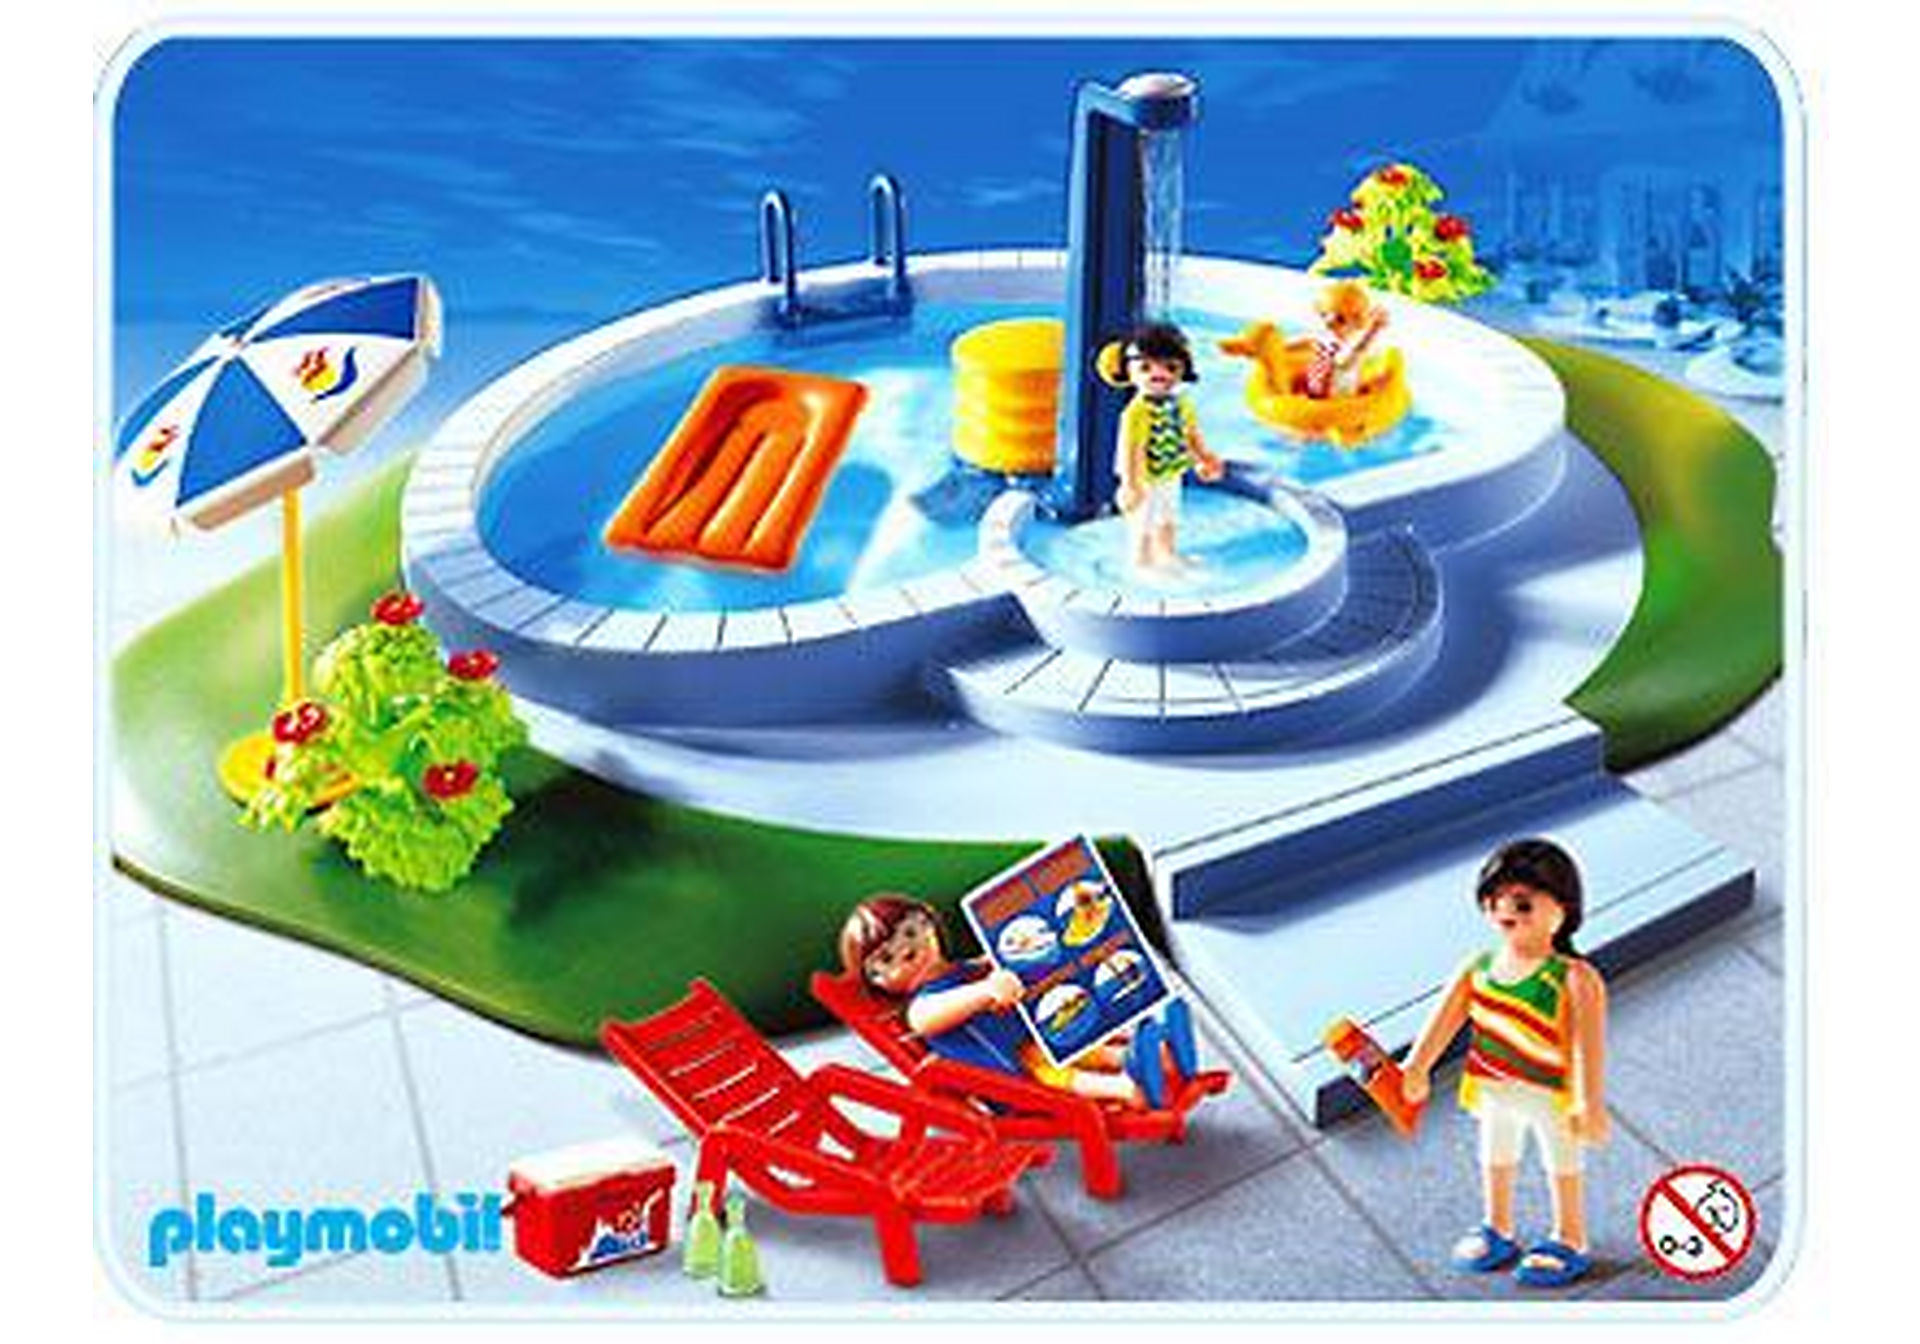 http://media.playmobil.com/i/playmobil/3205-B_product_detail/Swimmingpool